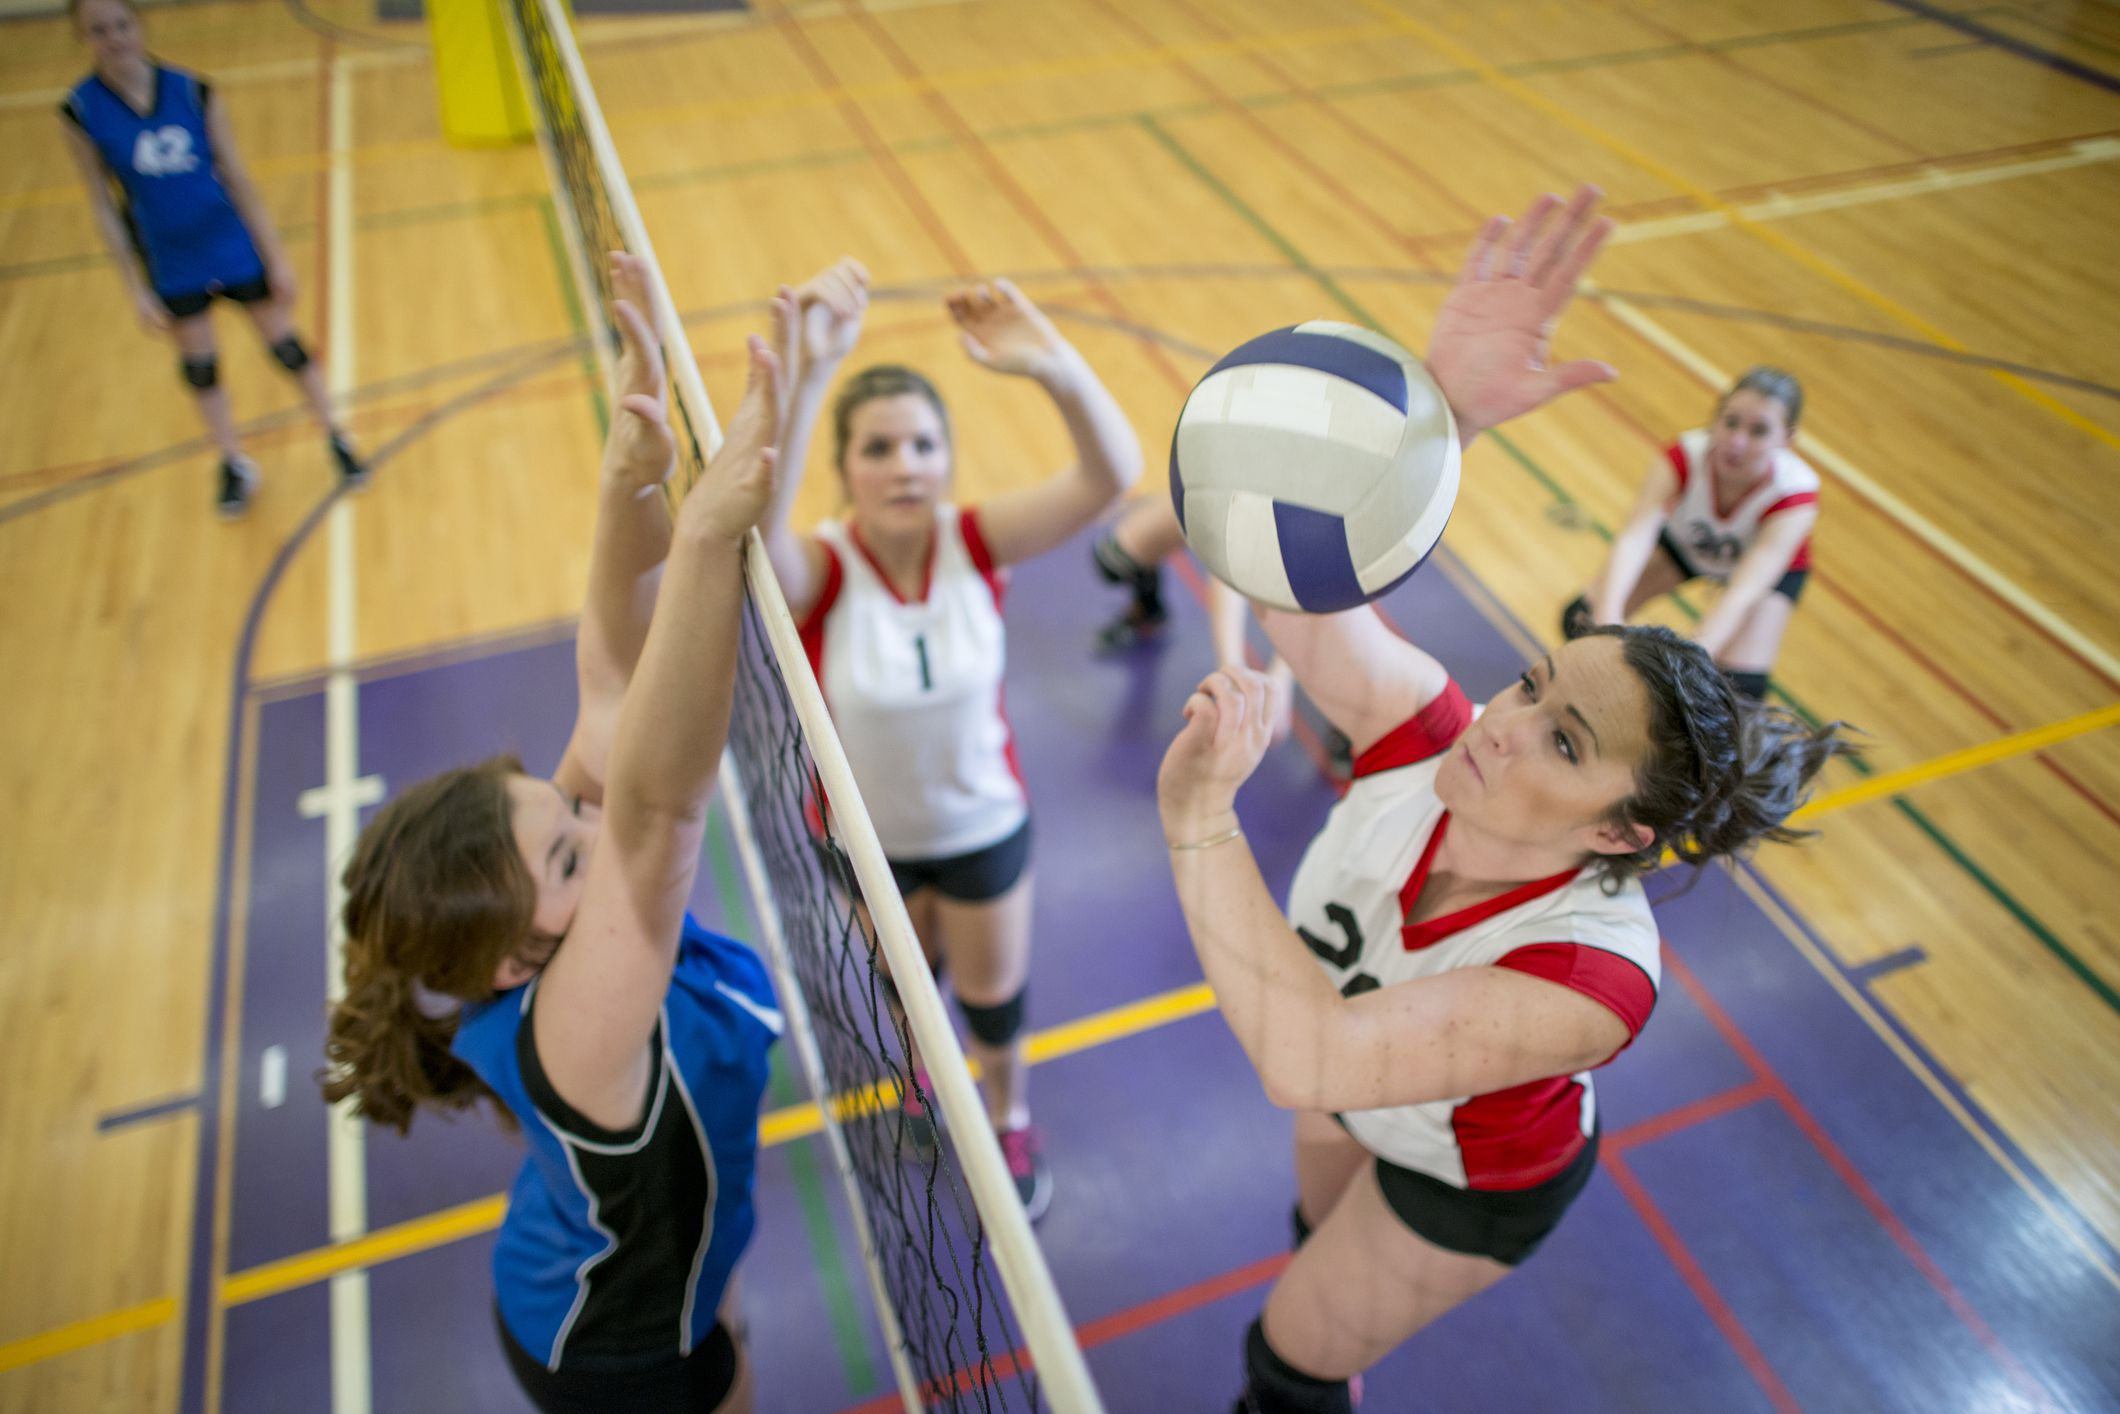 Volleyball Explained: What happens in Rotation 5